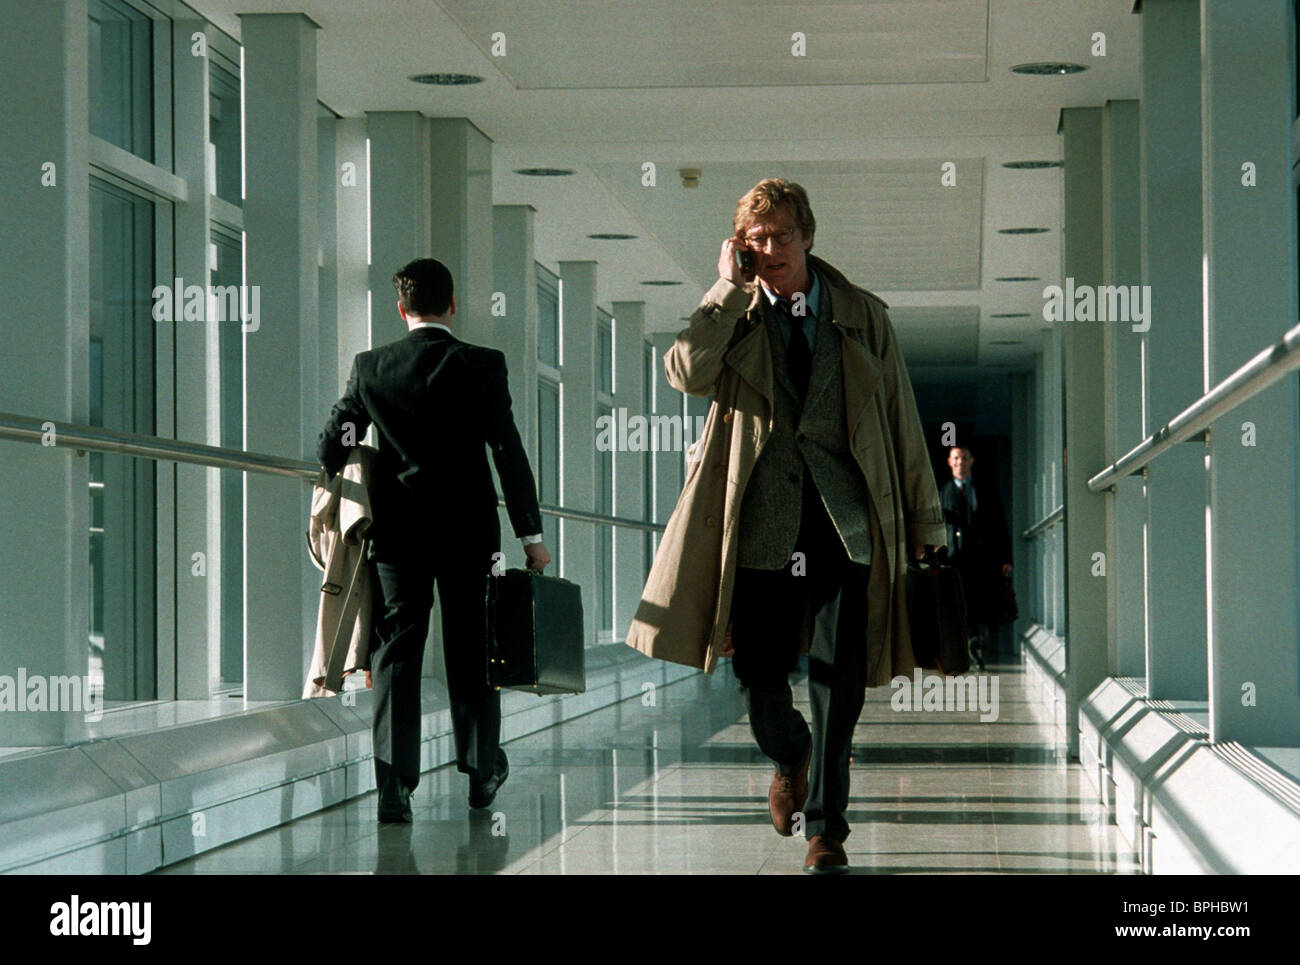 ROBERT REDFORD SPY GAME (2001) - Stock Image